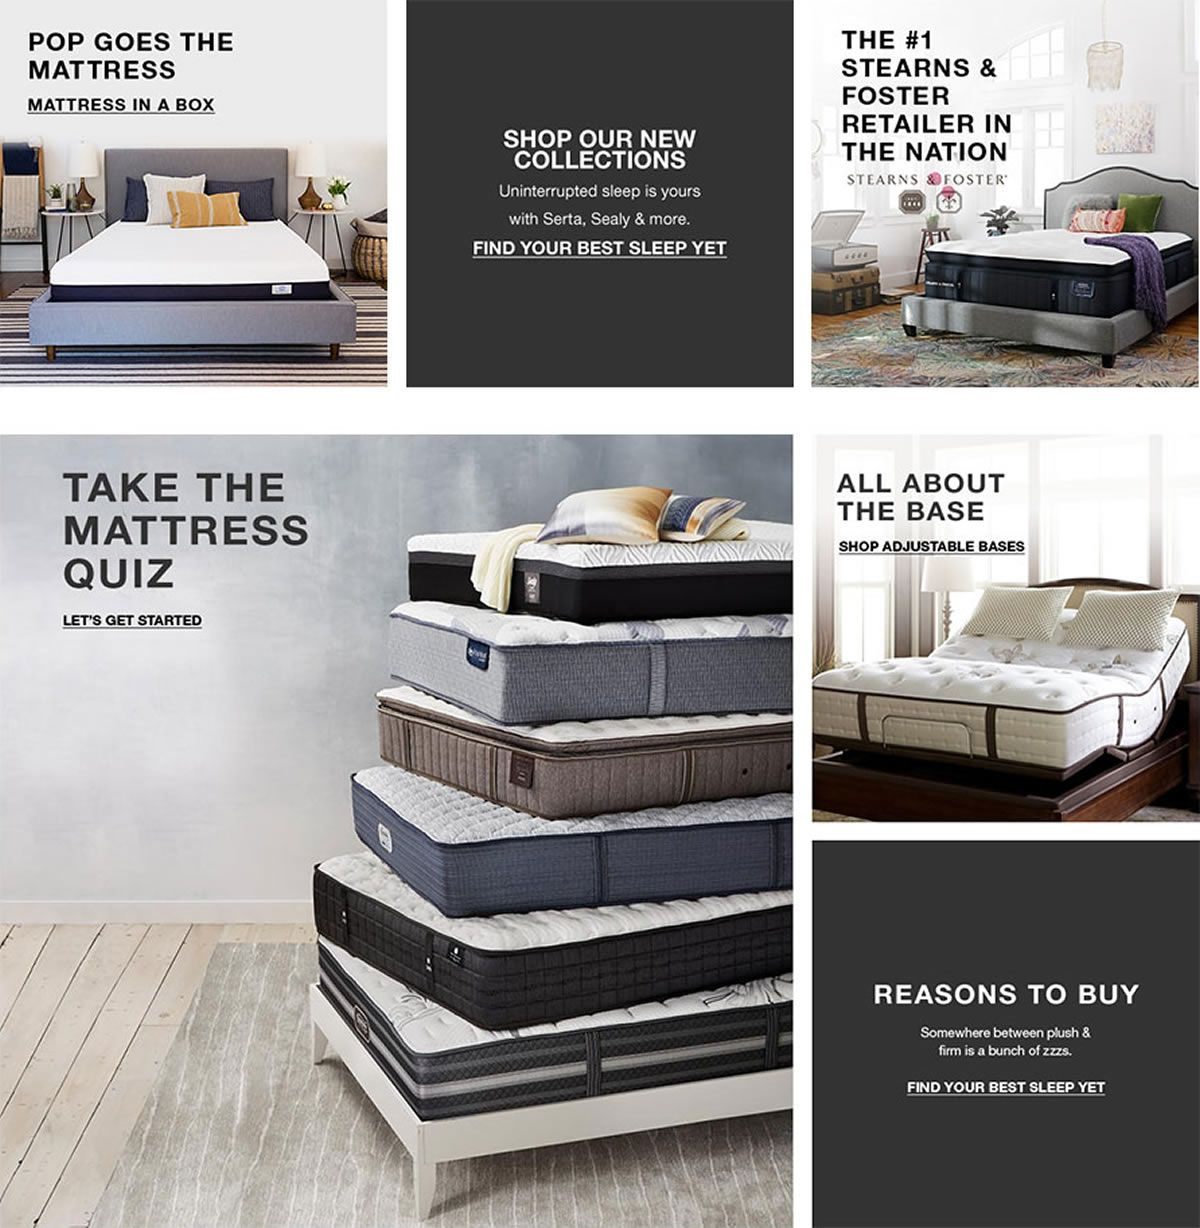 Poop Goes The Mattress, Mattress in a Box, Shop Our New Collections, Find Your Best Sleep Yet, Take The Mattress Quiz, Let's Get Started, The #1 Stearns and Foster Retailer in The Nation, All About The Base, Shop Adjustable Bases, Reasons to Buy